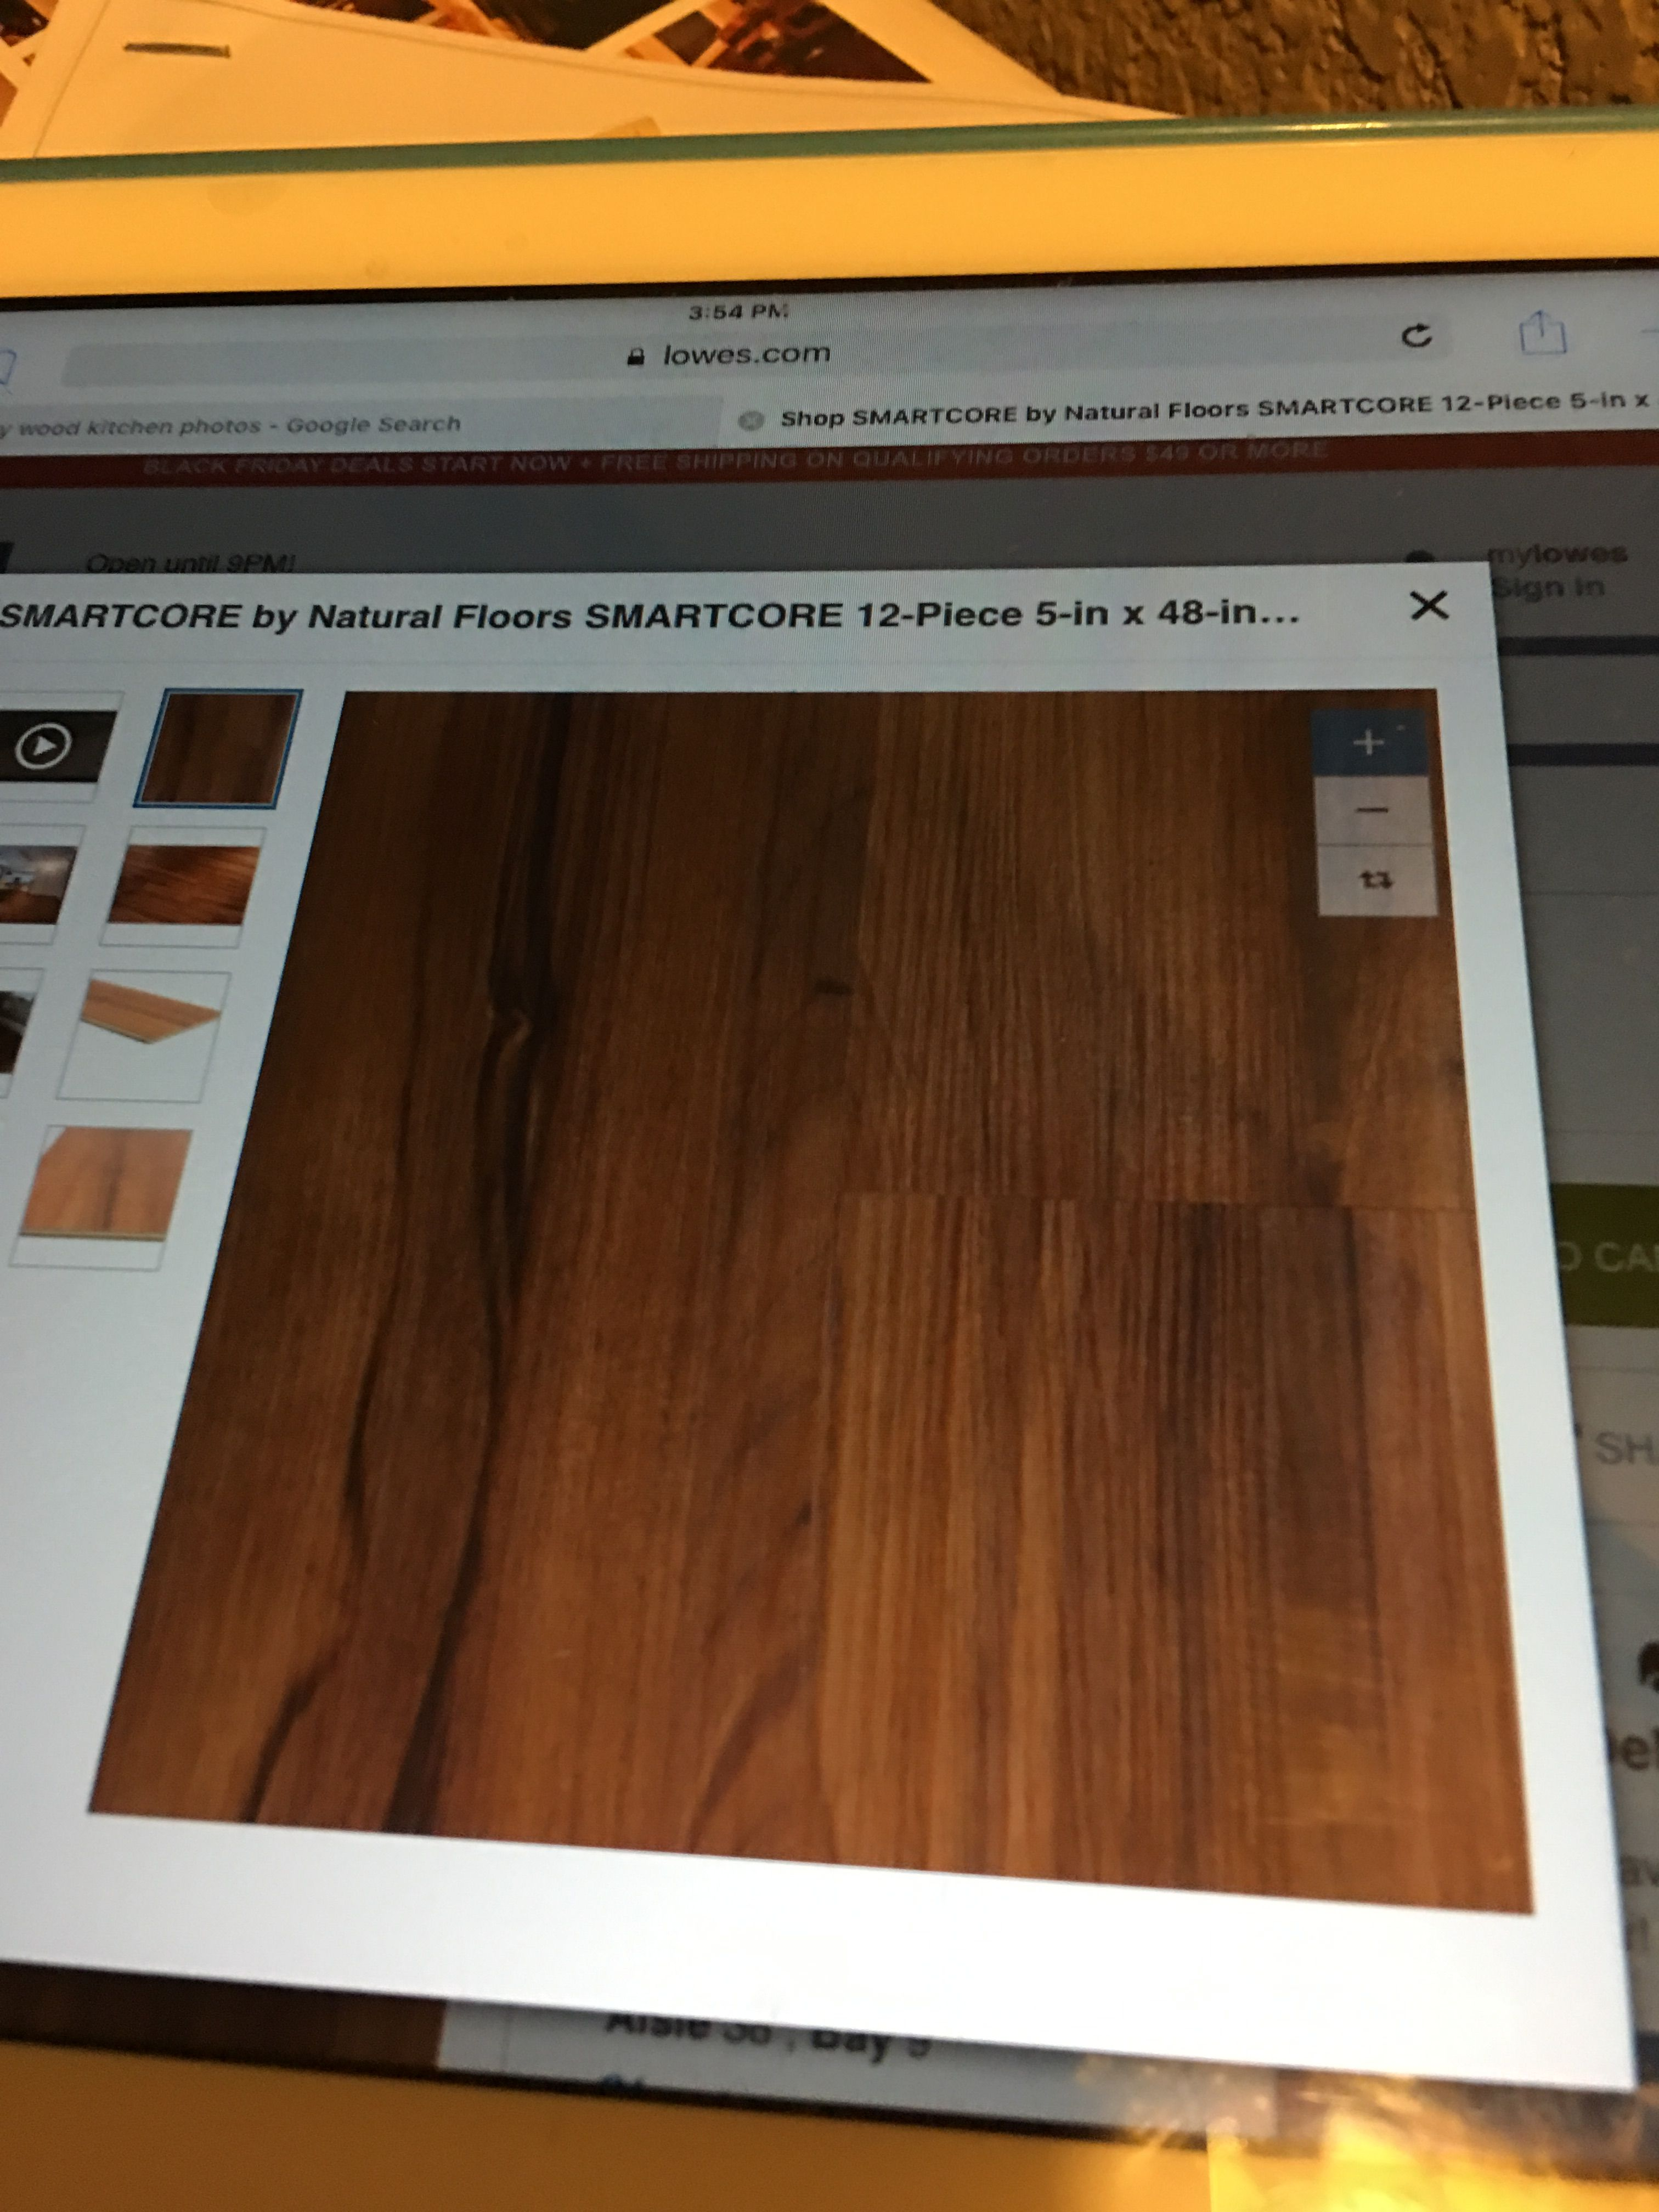 Smartcore Flooring used in my Kitchen chose this because